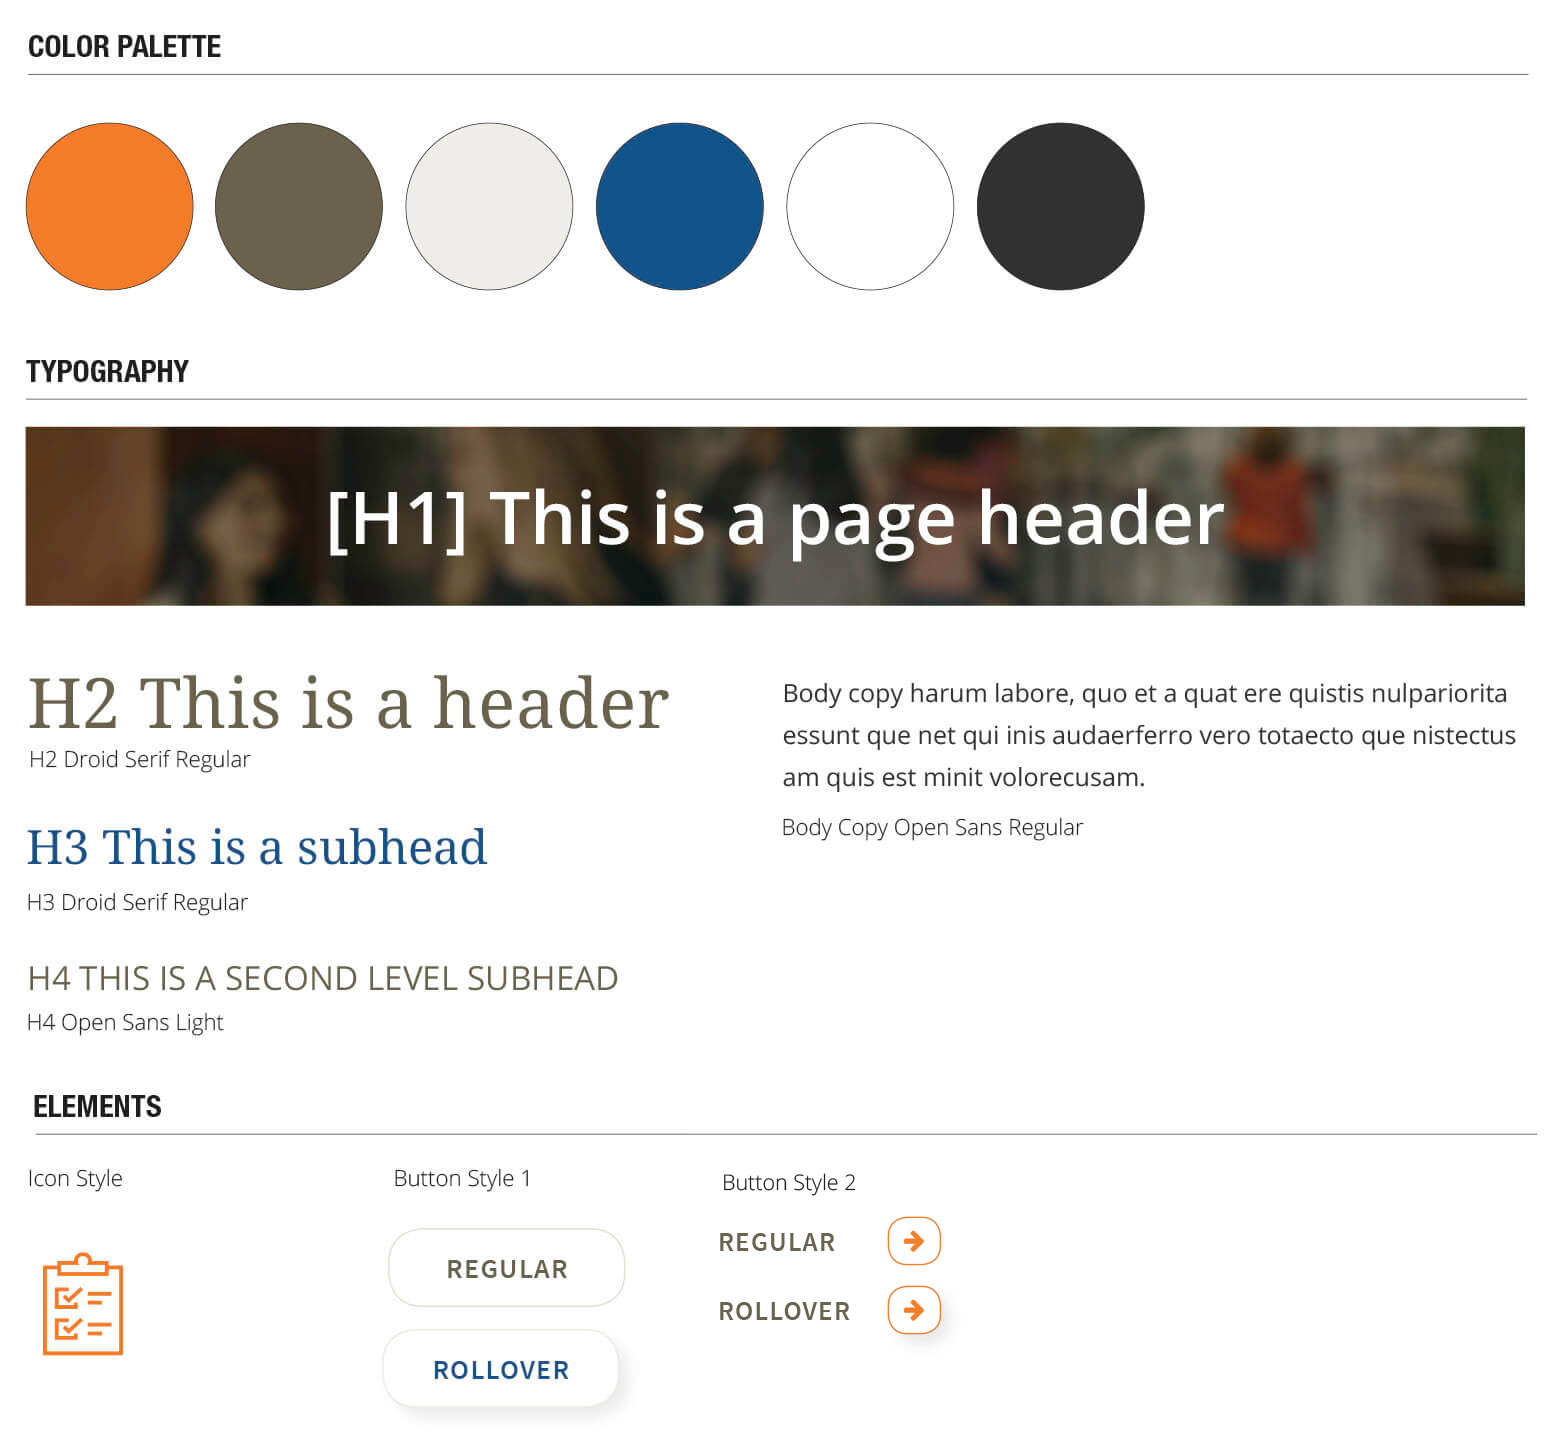 Image of a sheet with styling definitions, containing color palette, icons, buttons, and text.